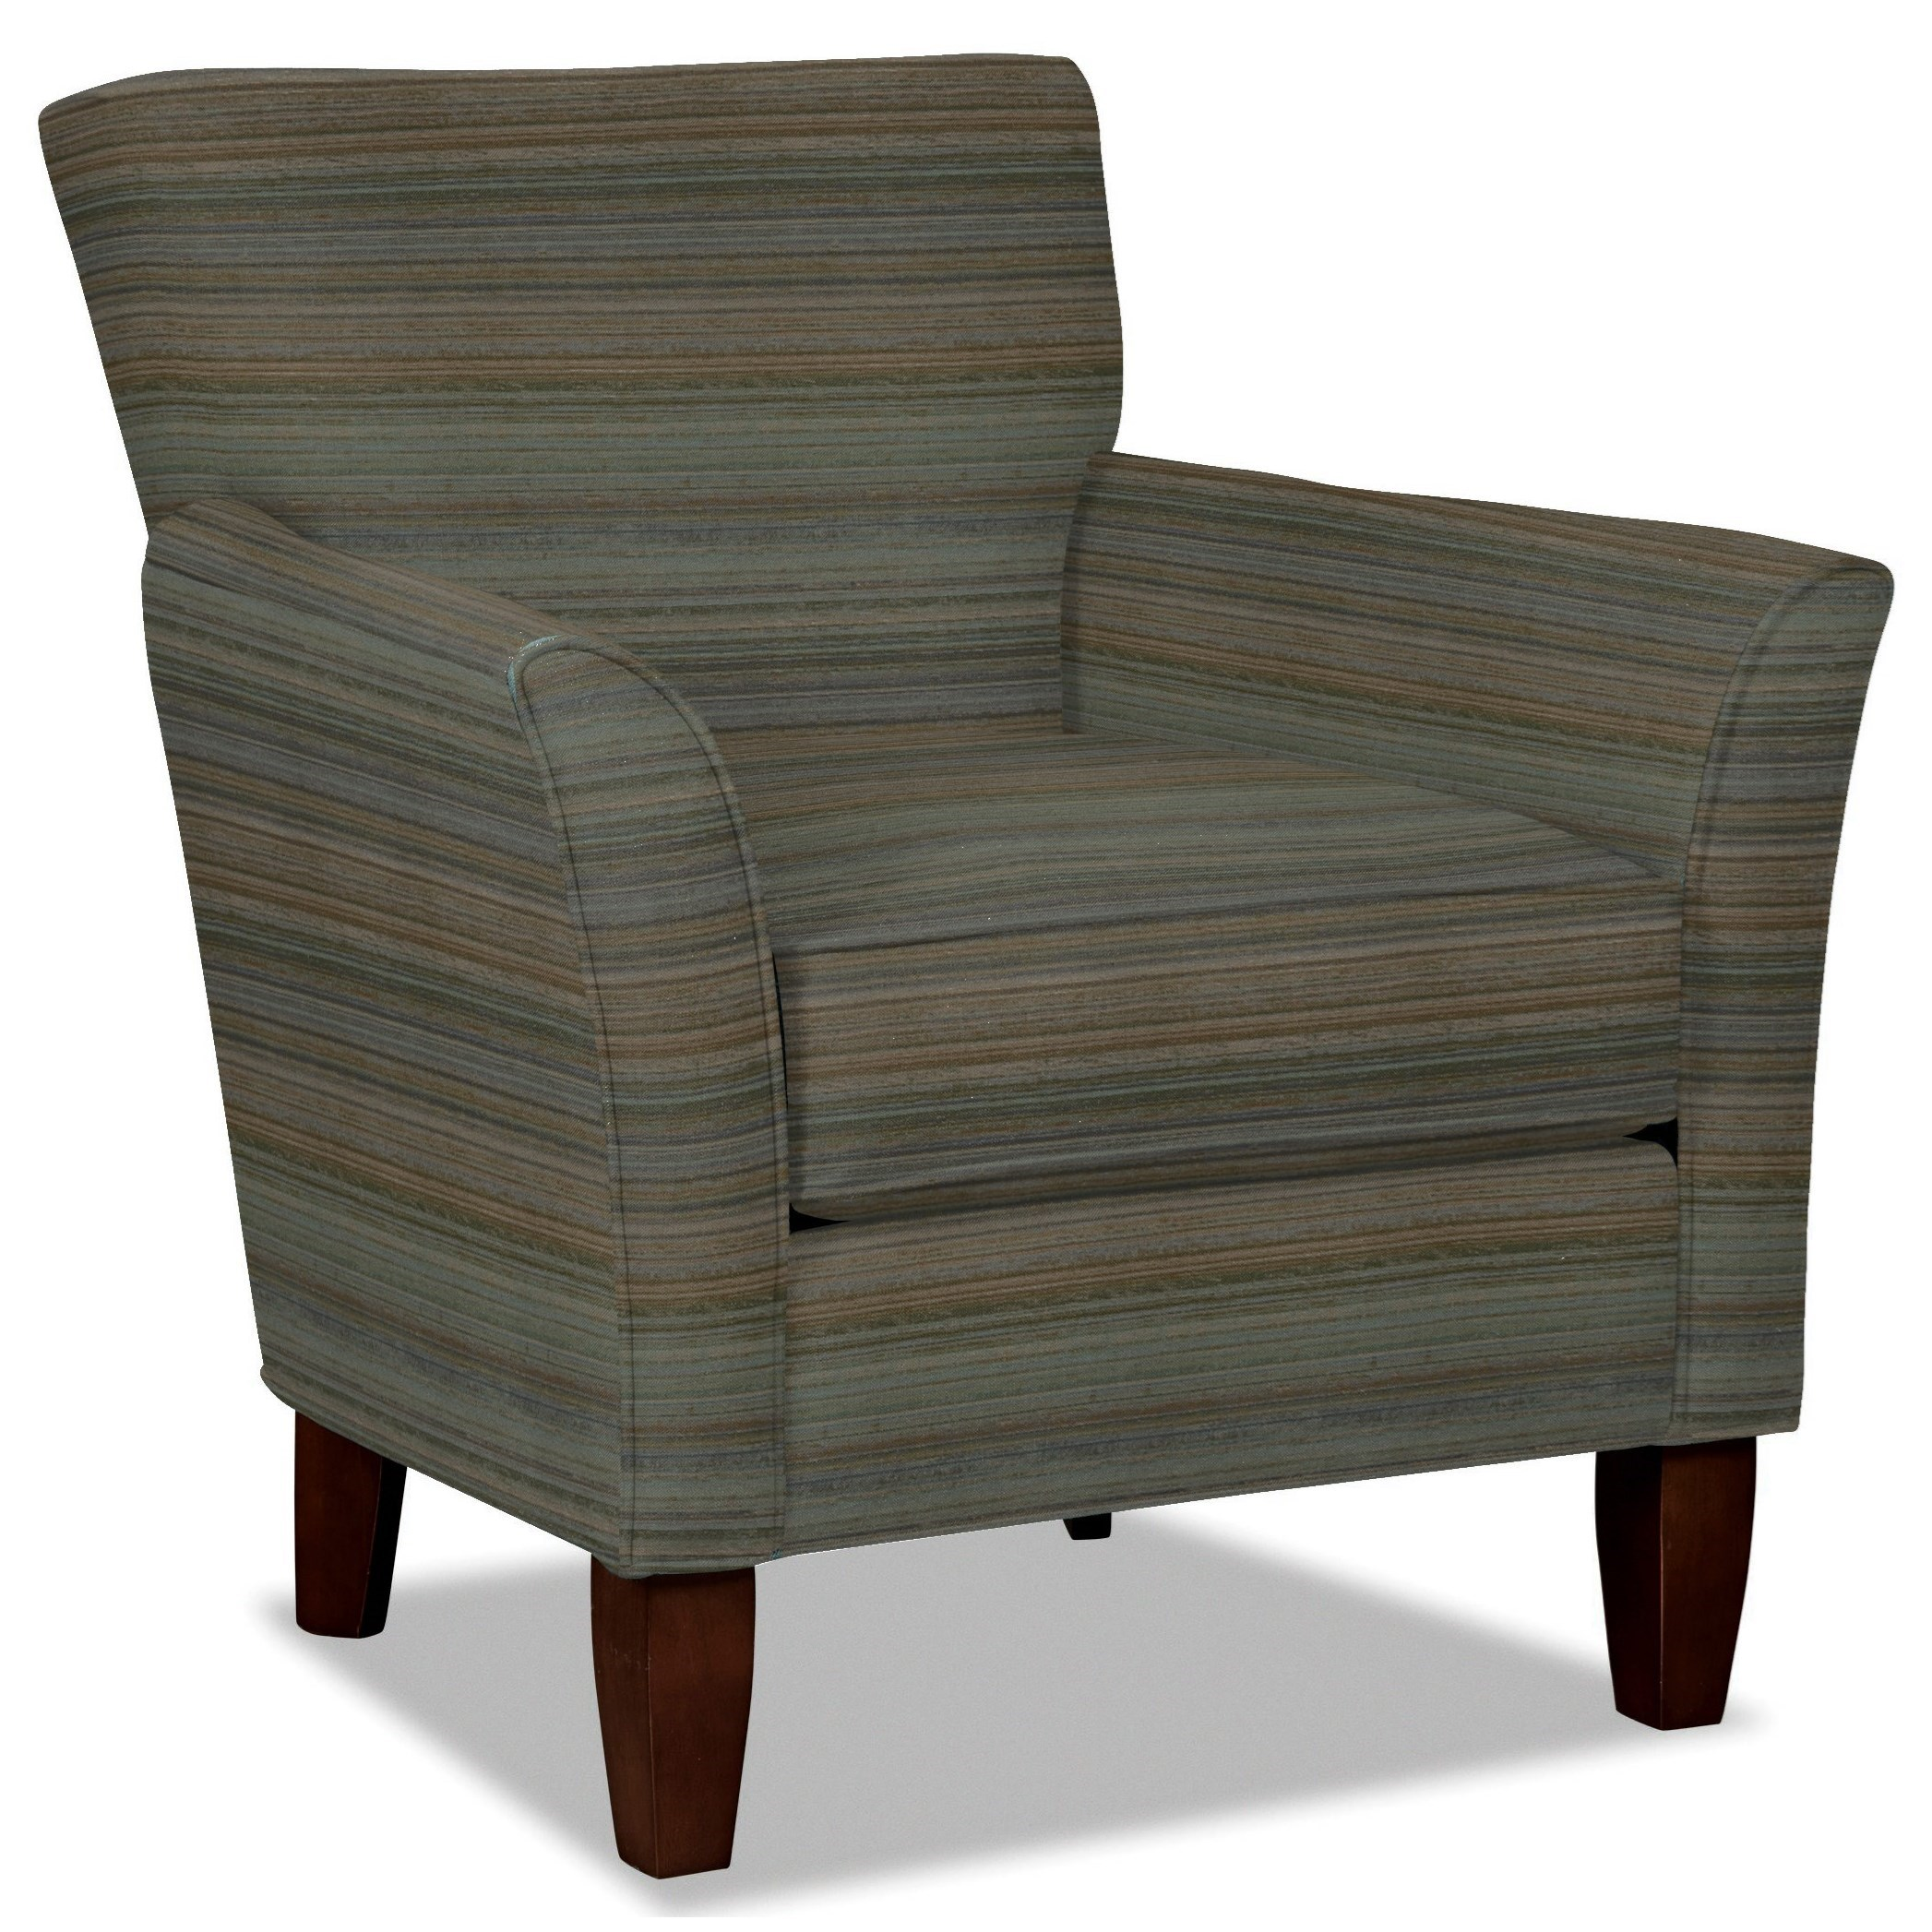 Craftmaster 060110 Accent Chair - Item Number: 060110-PREMIER-21